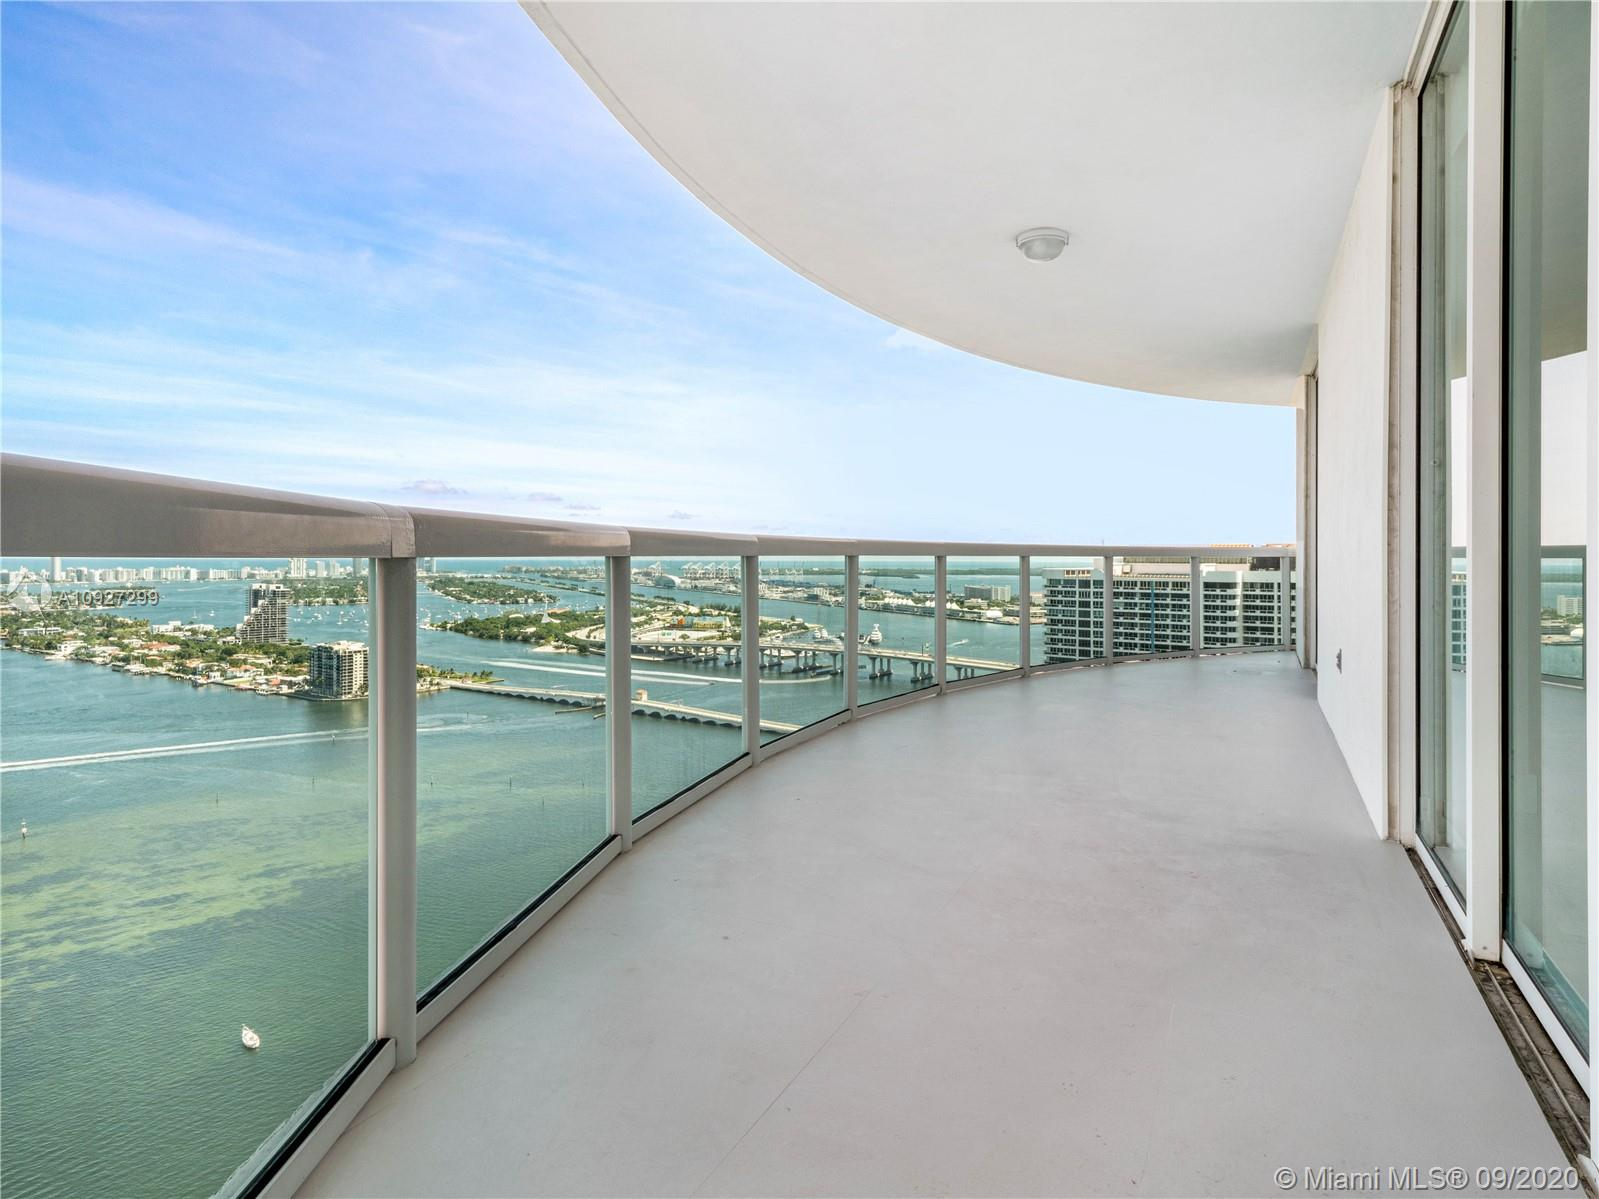 Stunningly renovated 3 bedroom, 3 bathroom corner unit on high floor at the 1800 Club. Enjoy Panoramic views of the the open wide bay, all the way down to south beach and the ocean, port of miami and much more. Units has white tile flooring throughout the common spaces and wood in the bedrooms. Full service building with concierge, swimming pool and gym. Unit comes with 1 deeded garage space and another space through valet. Call today for an appointment!